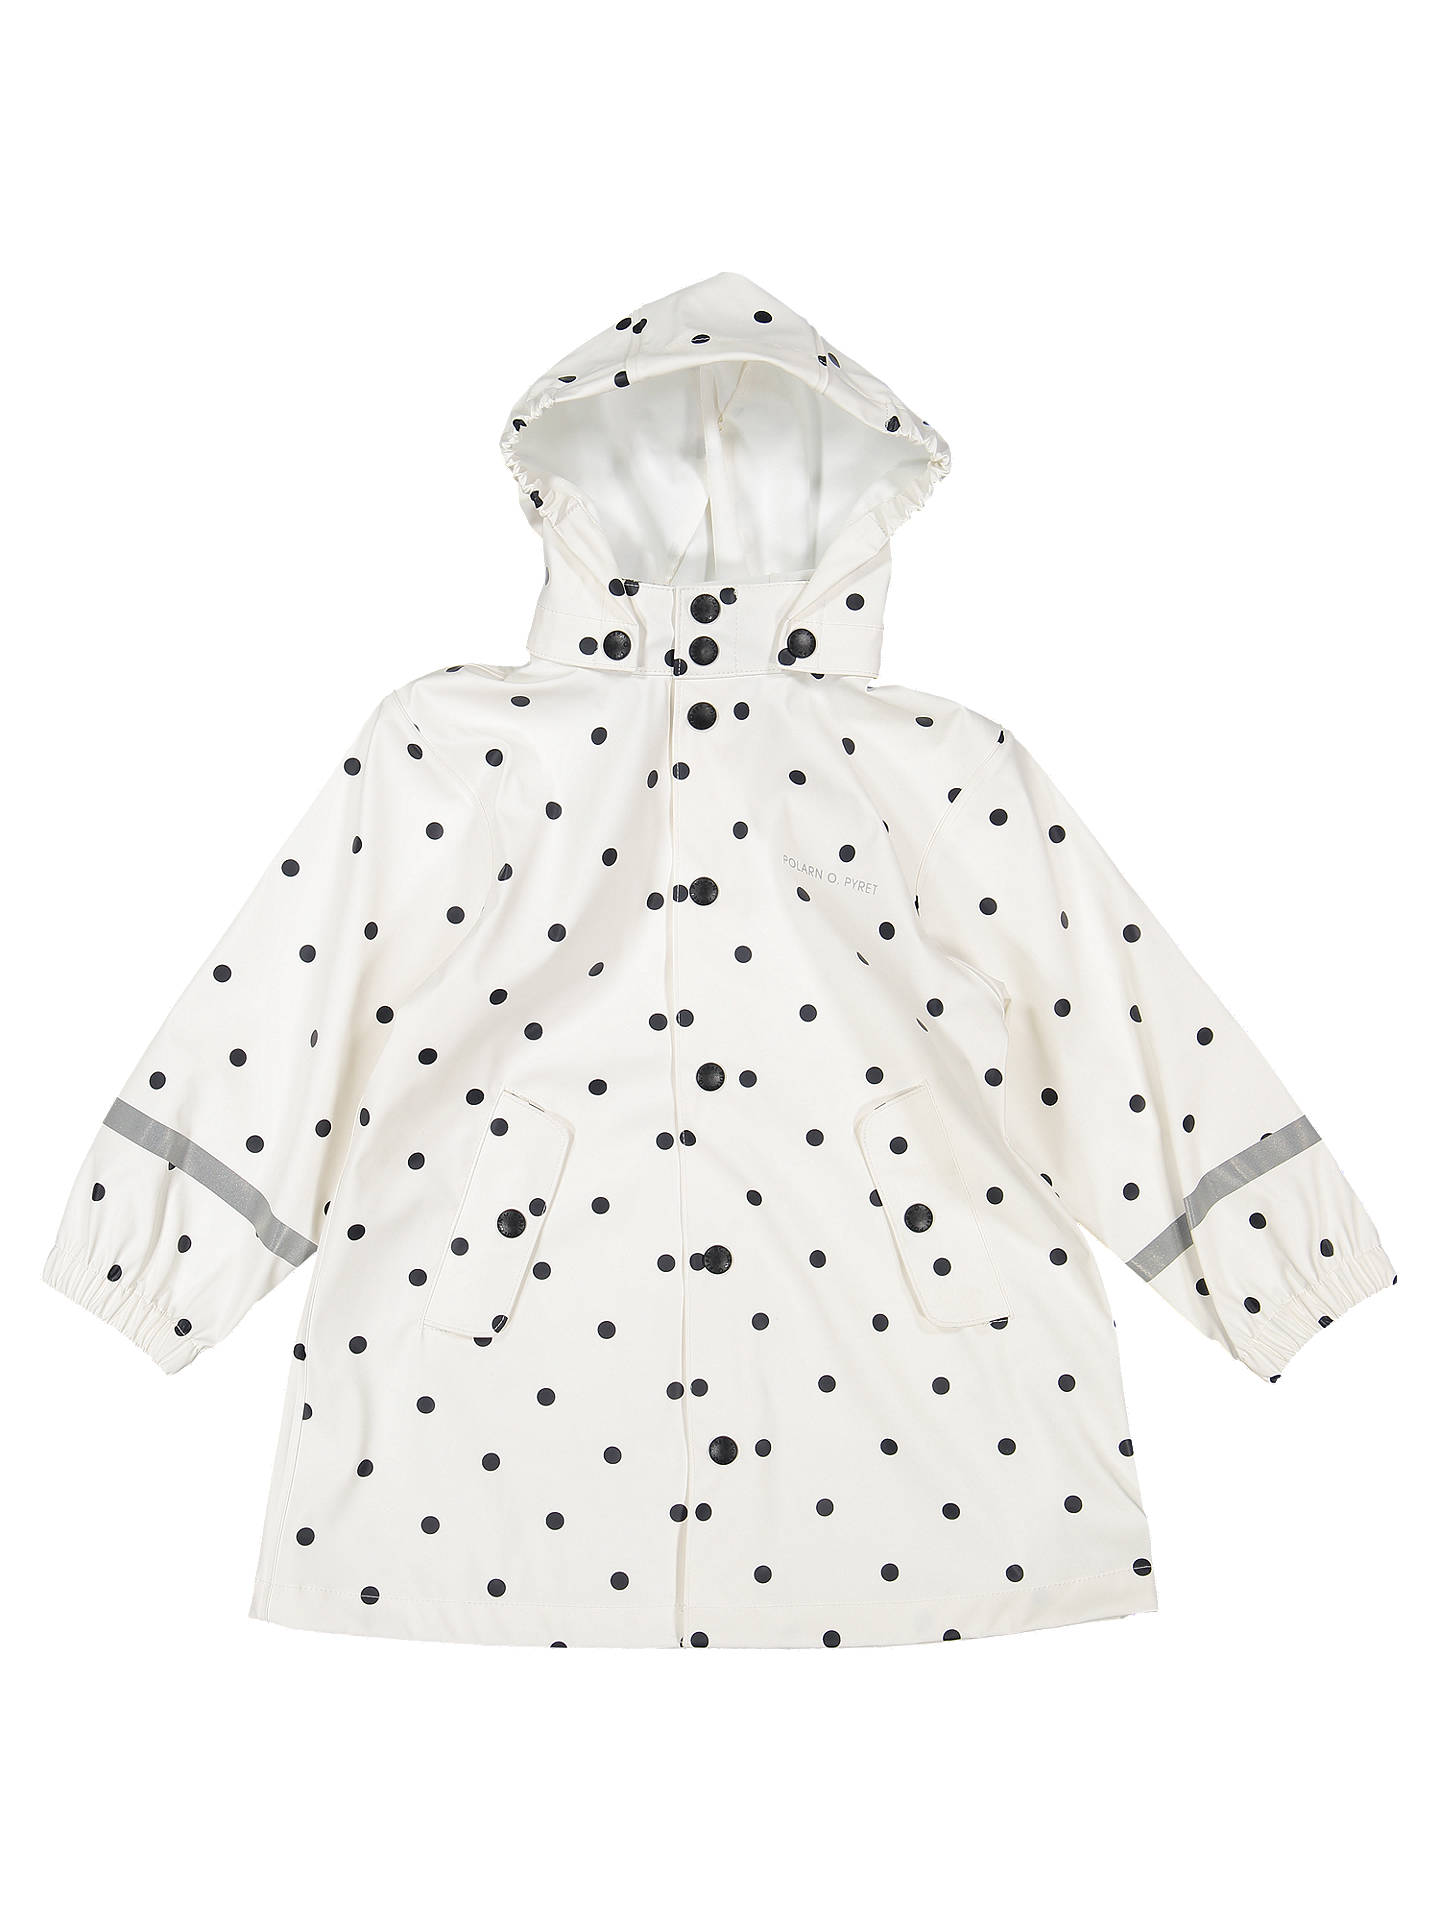 25f04f2d47f5 Polarn O. Pyret Children s Spot Print Raincoat